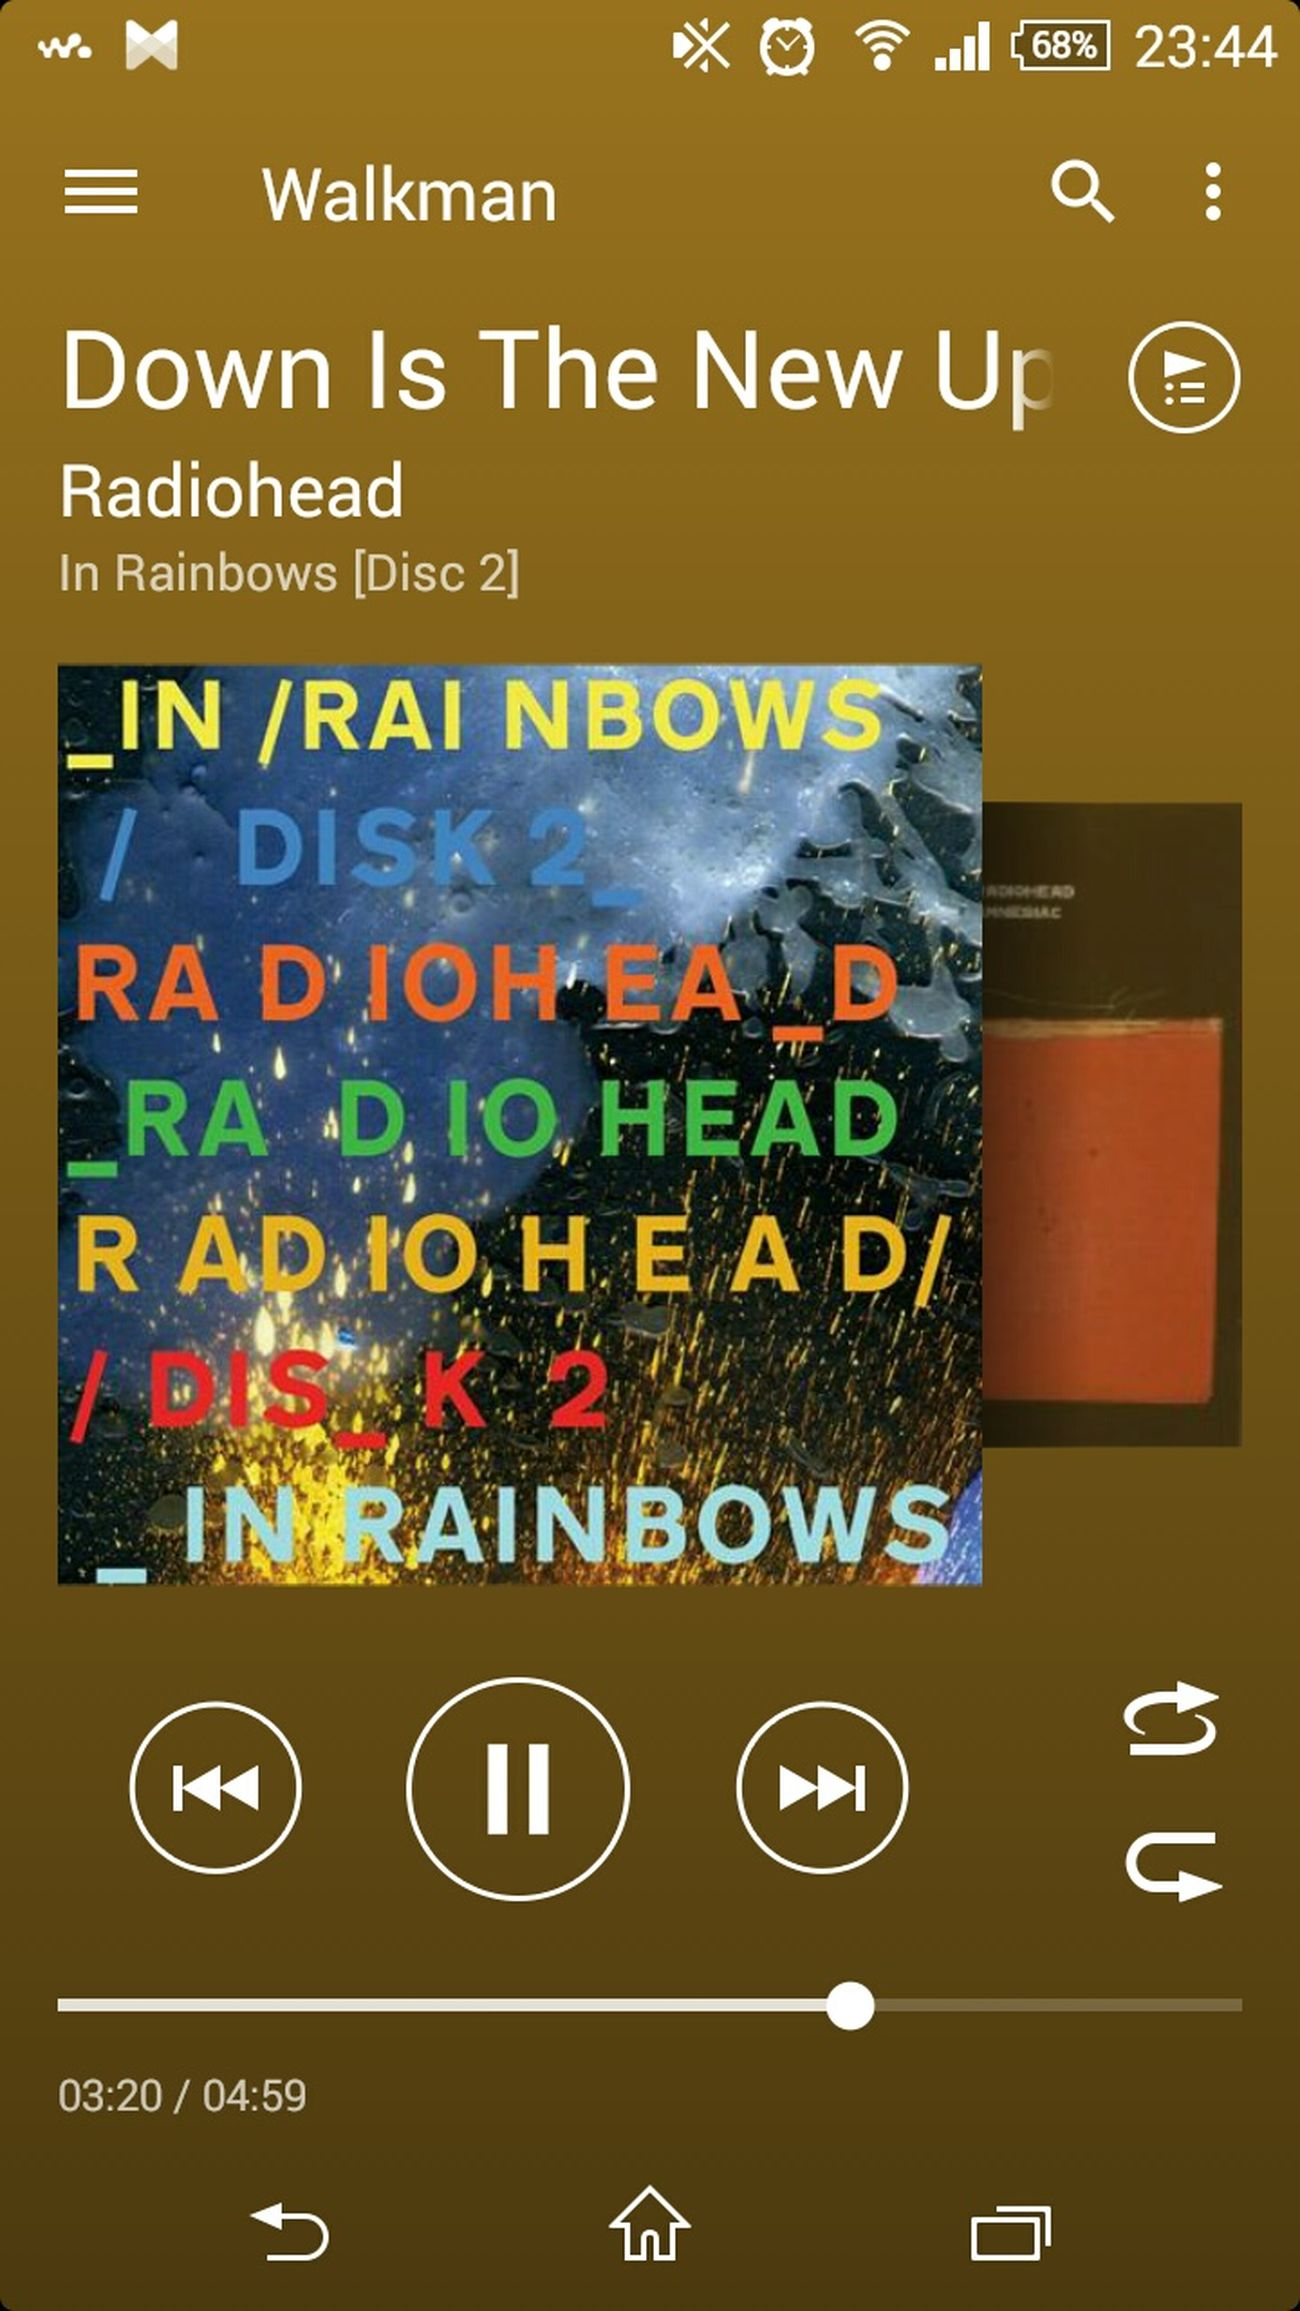 Music Sleepless Radiohead Good Music Down Is The New Up